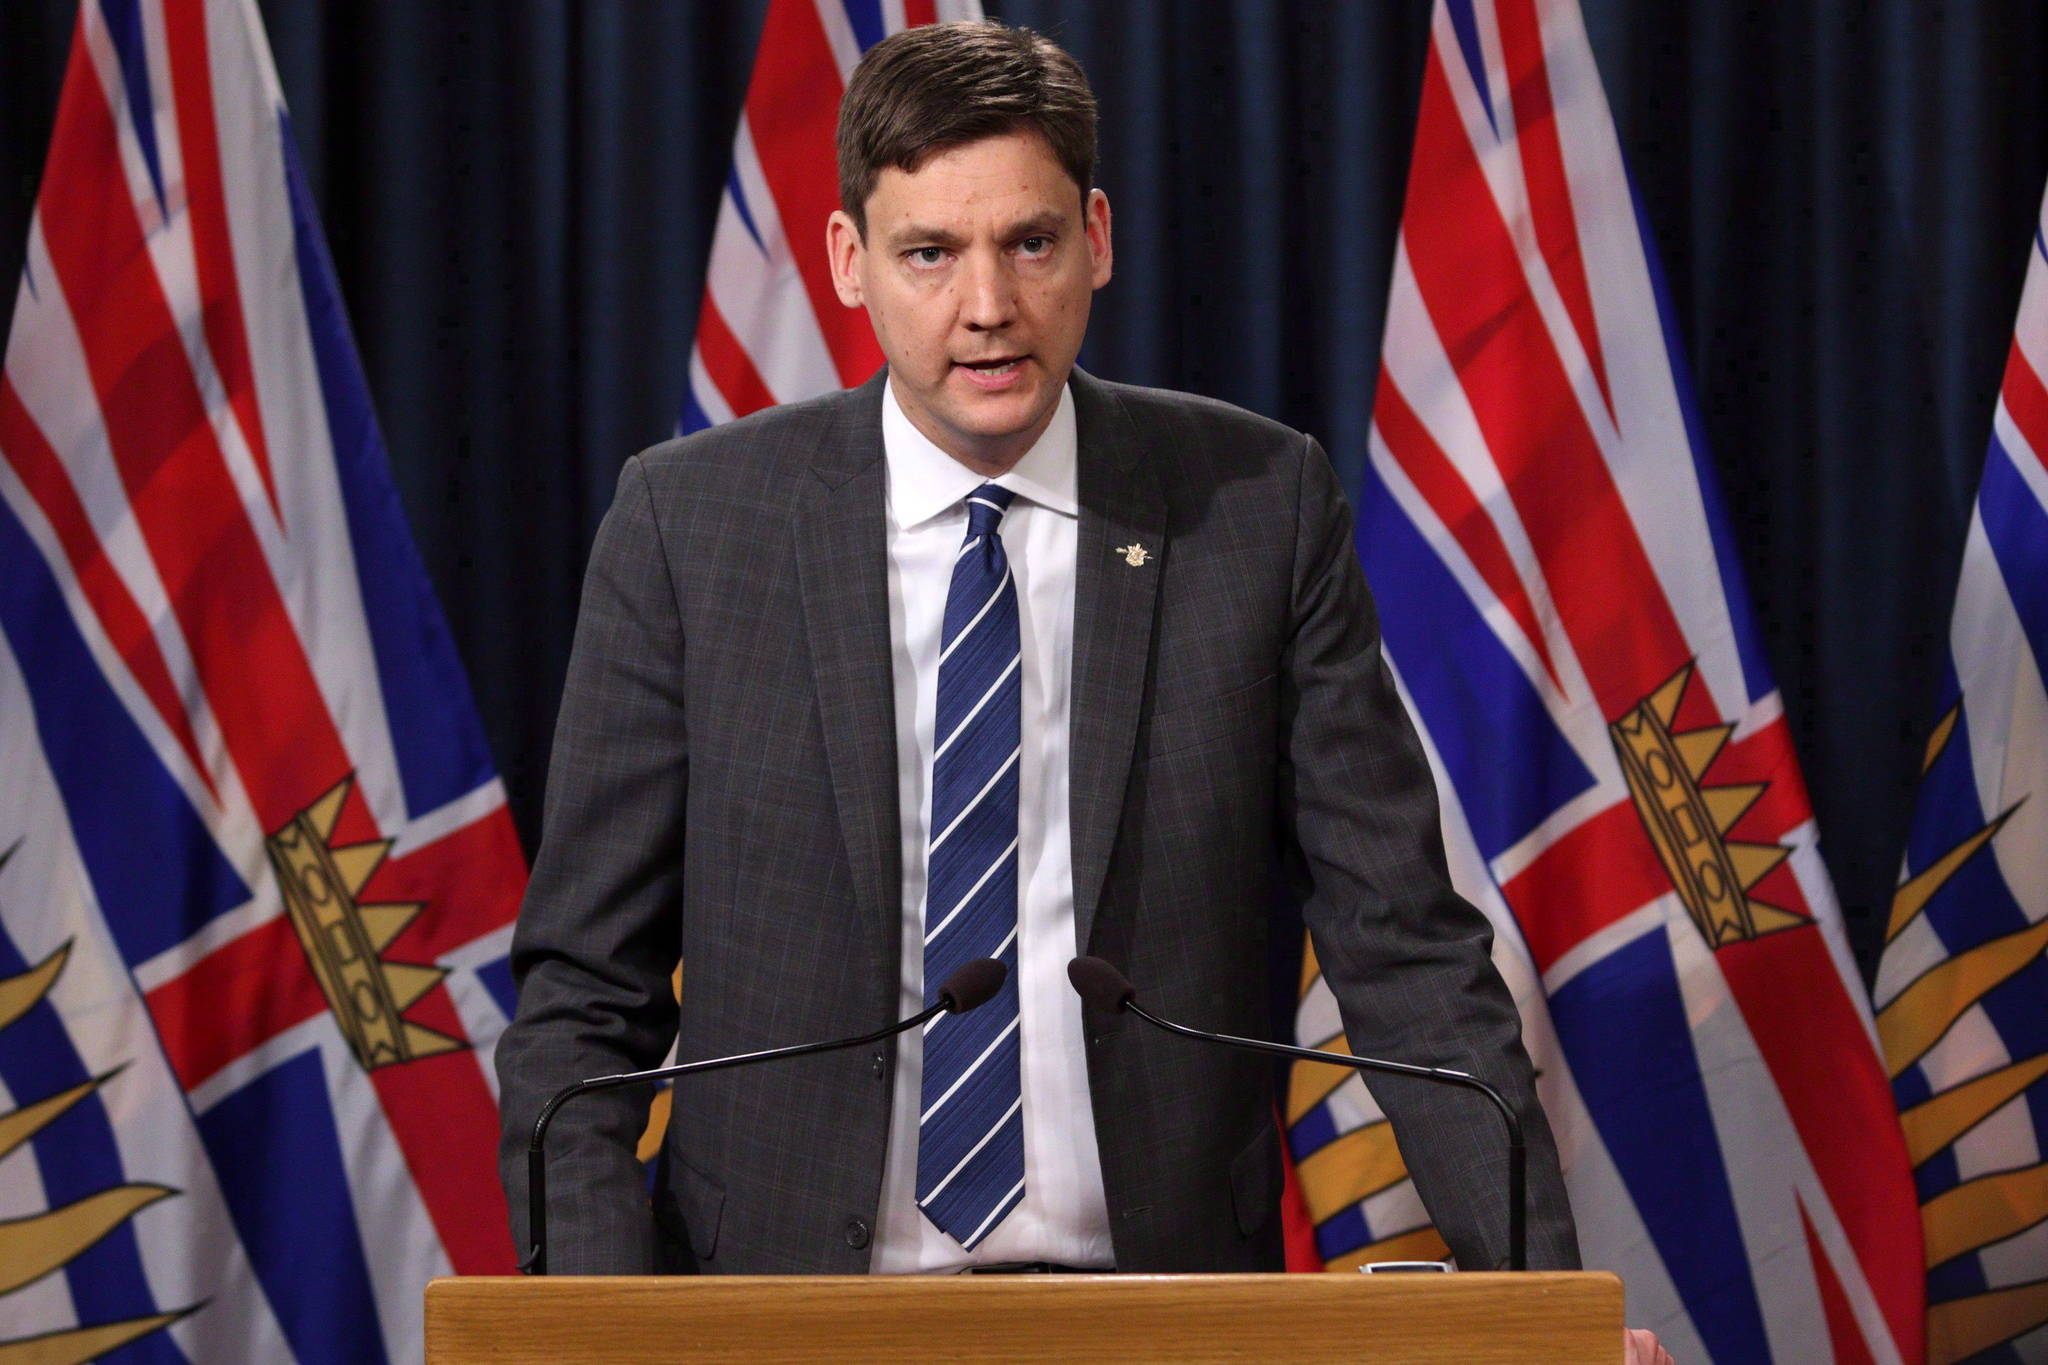 B.C. Attorney General David Eby is pictured in this 2018 file photo. THE CANADIAN PRESS/Chad Hipolito